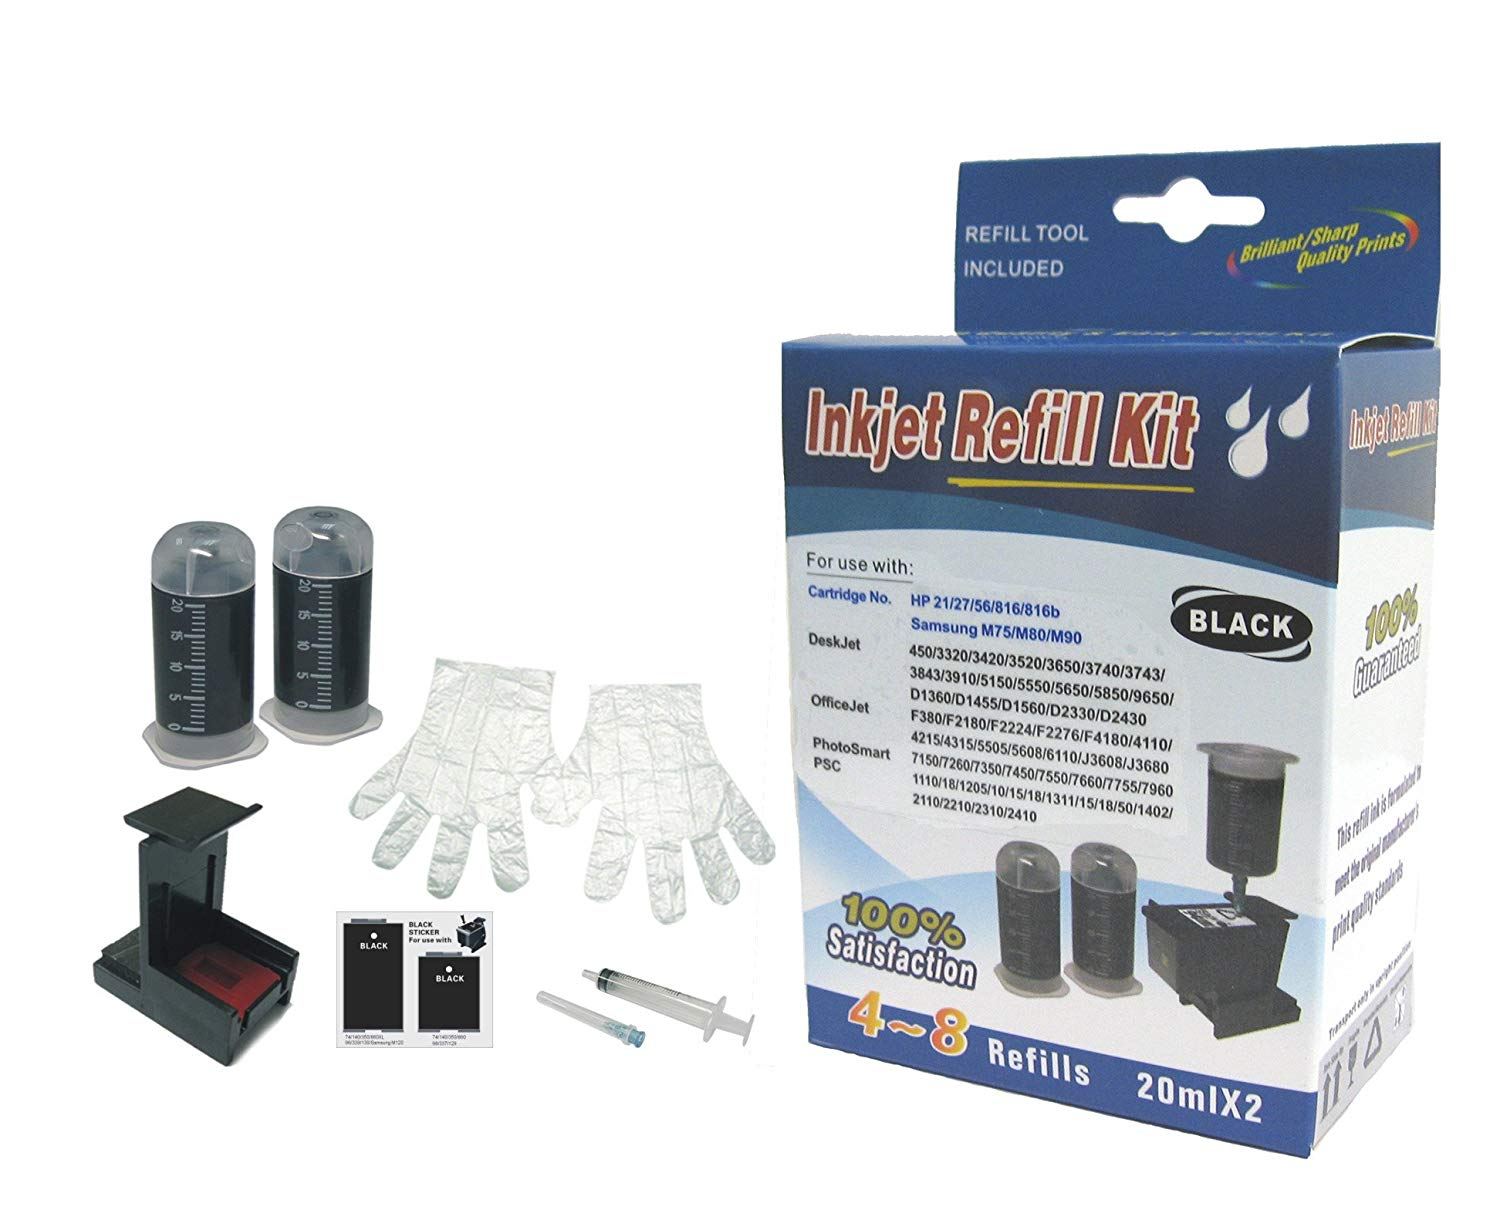 Self refill kit for HP21 HP27 Black ink cartridge HP 21 HP 27